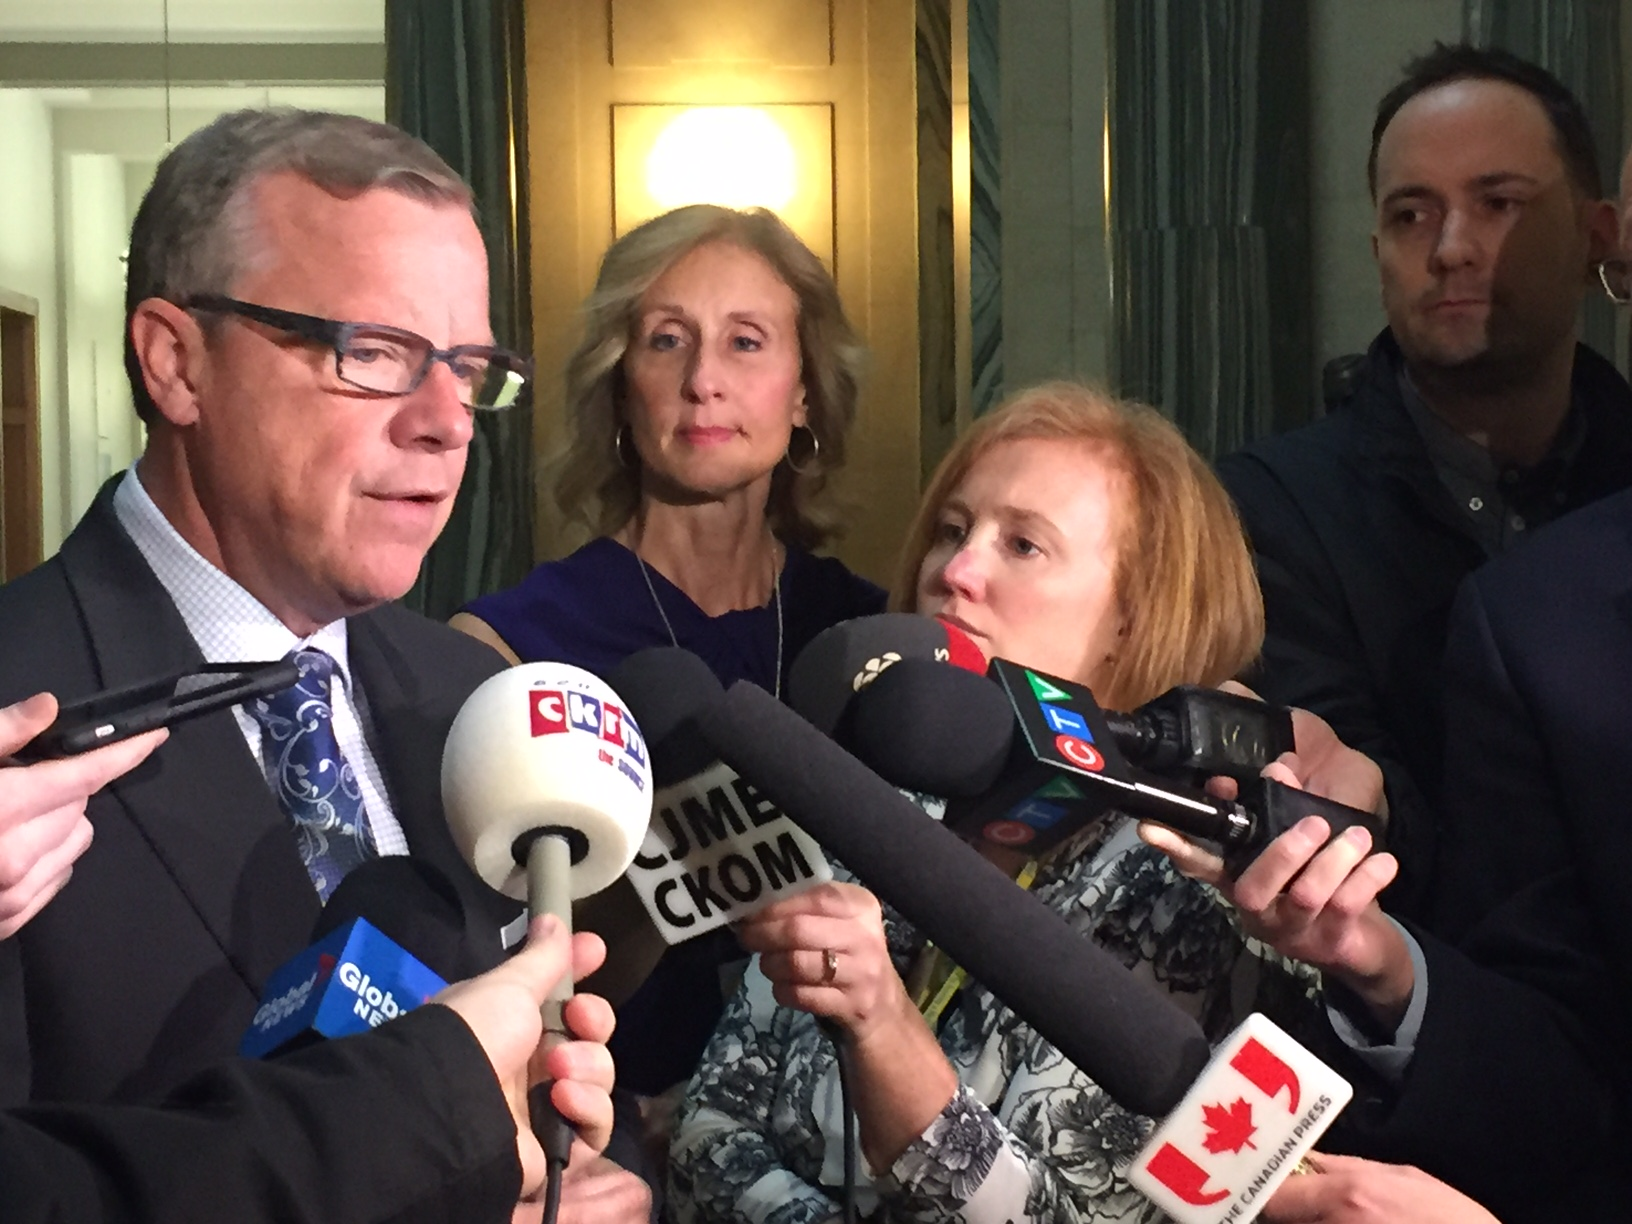 Sask. Premier confident with how Cameco is handling shutdown situation